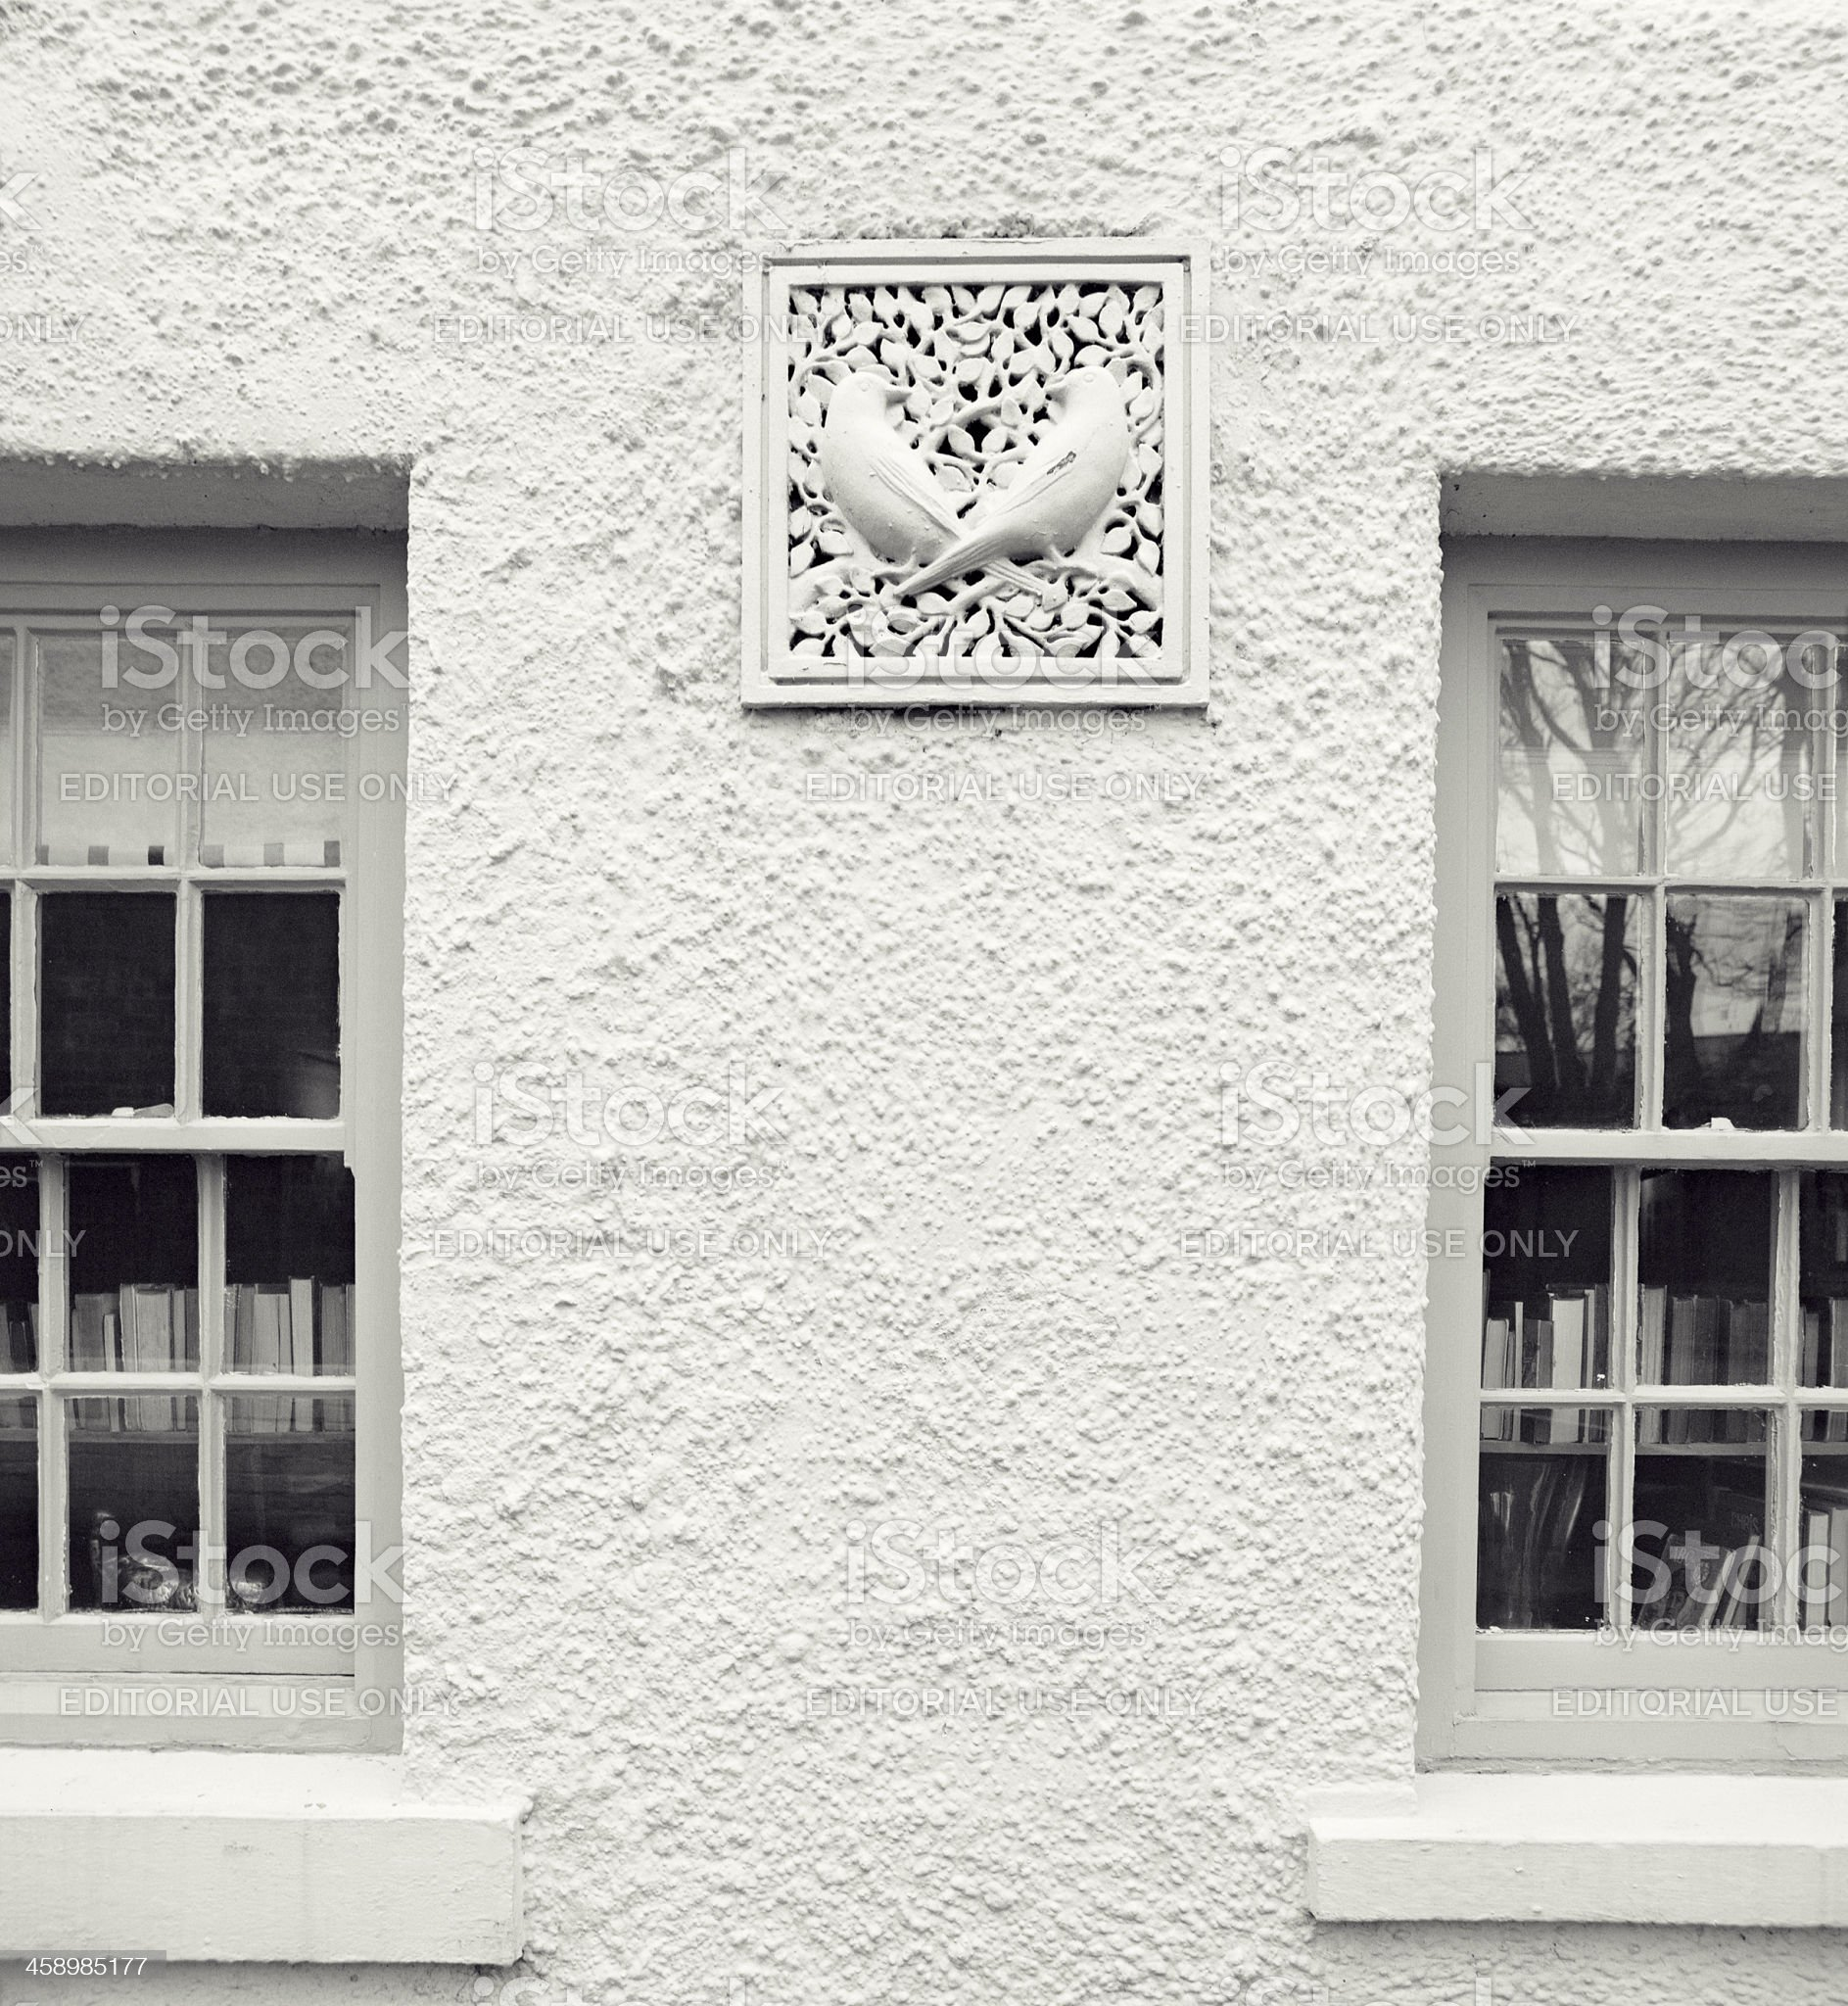 Decoration of an English pub  - detail royalty-free stock photo